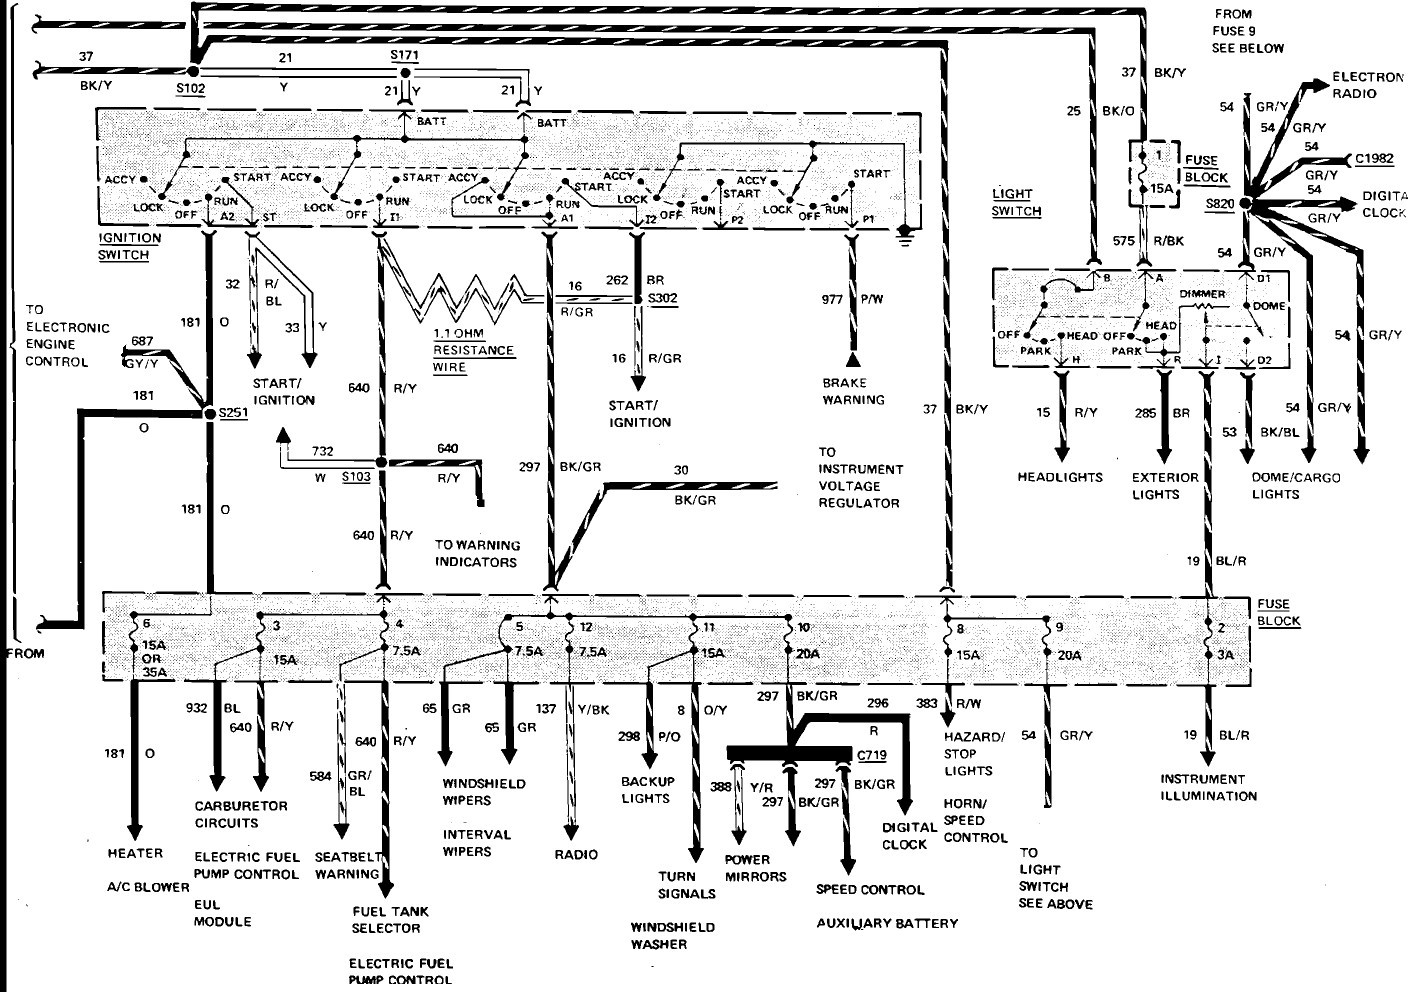 Ford F53 Wiring Diagram Detailed Schematic Diagrams Explorer Heated Seat For You All U2022 460 Distributor